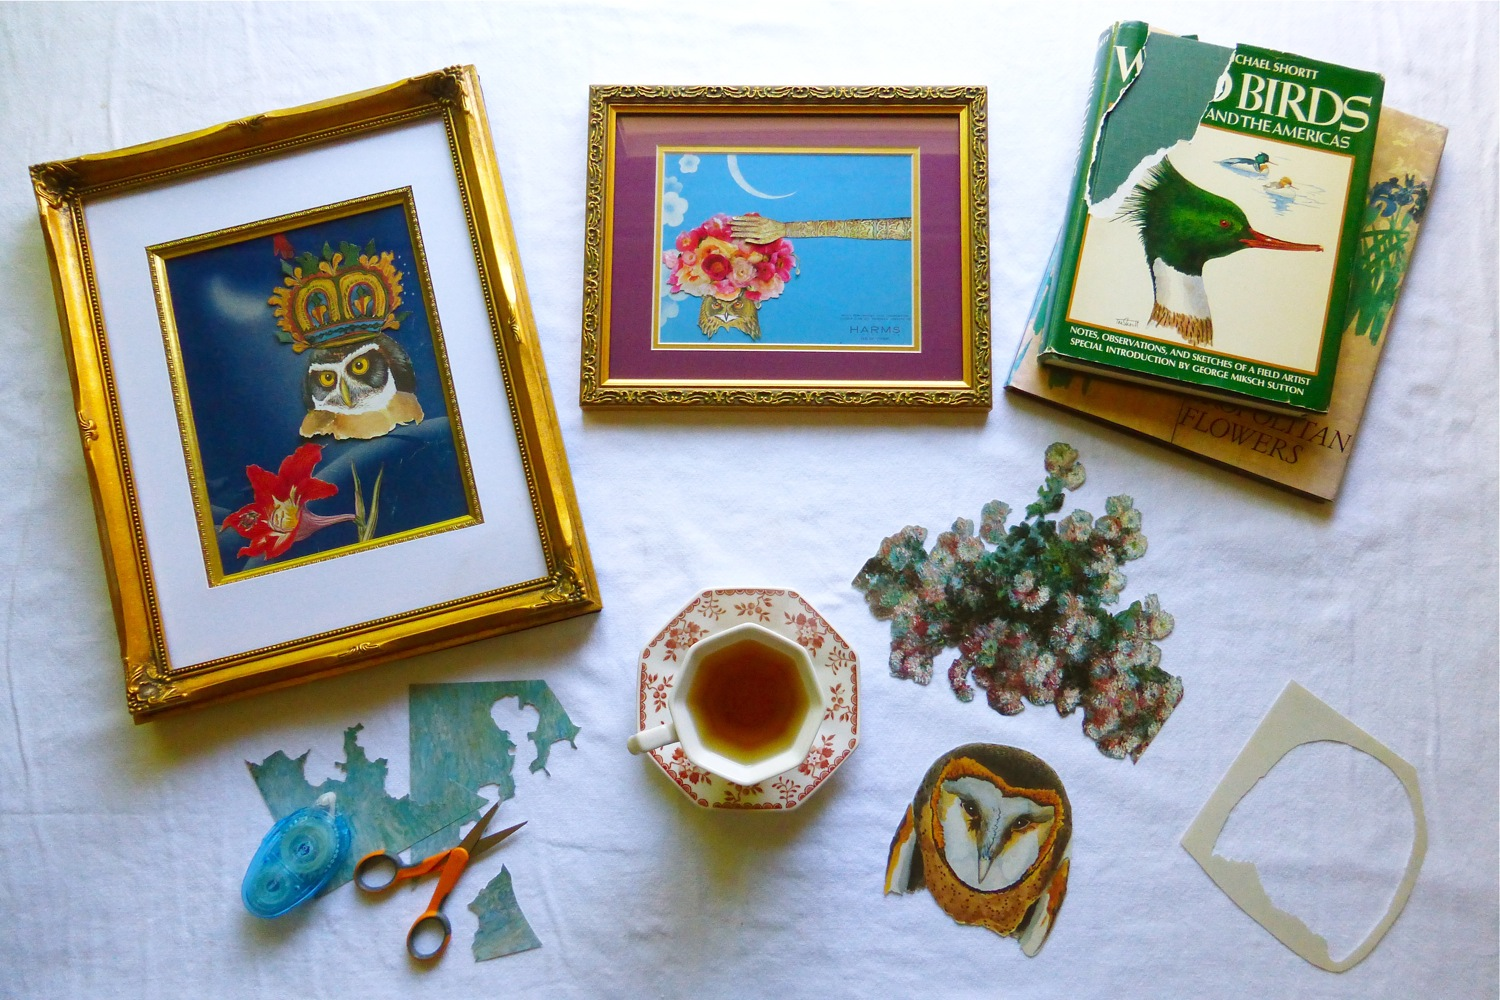 #worldcollageday, collage art by June Anderson, June Anderson's collage art, owl collage art by June Anderson, June Anderson of Under The Plum Blossom Tree, cut up old books for collage